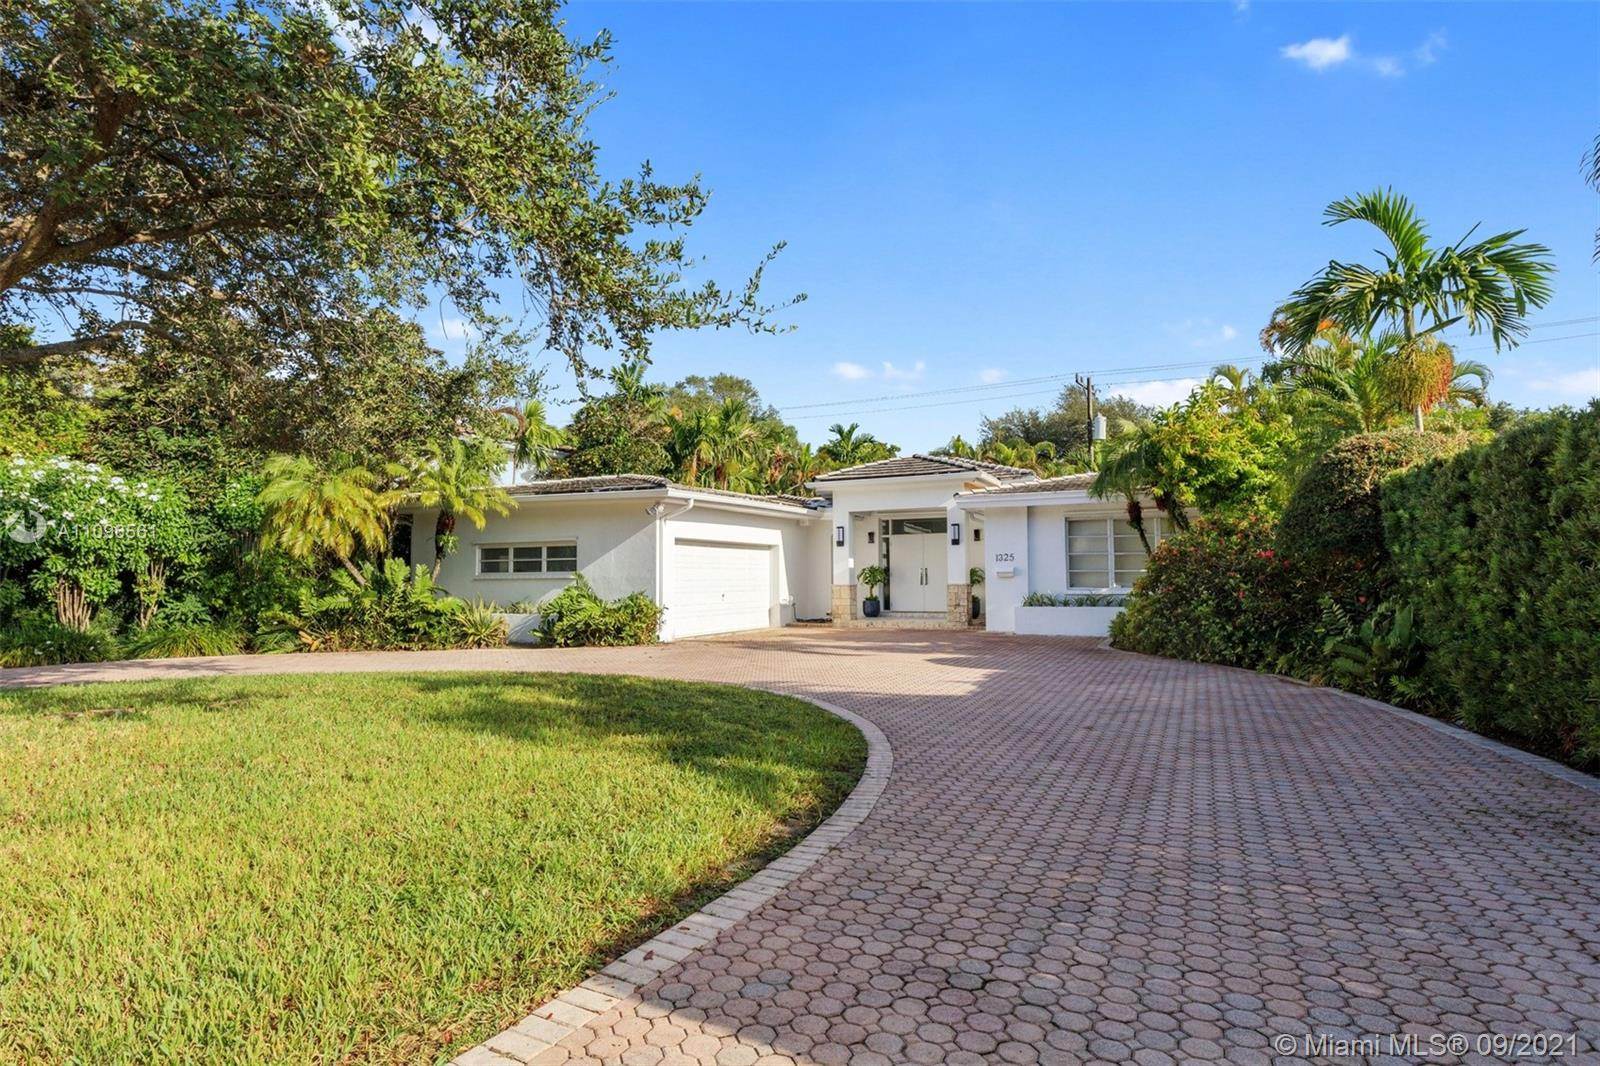 Single Family Home,For Rent,1325 Blue Rd, Coral Gables, Florida 33146,Brickell,realty,broker,condos near me